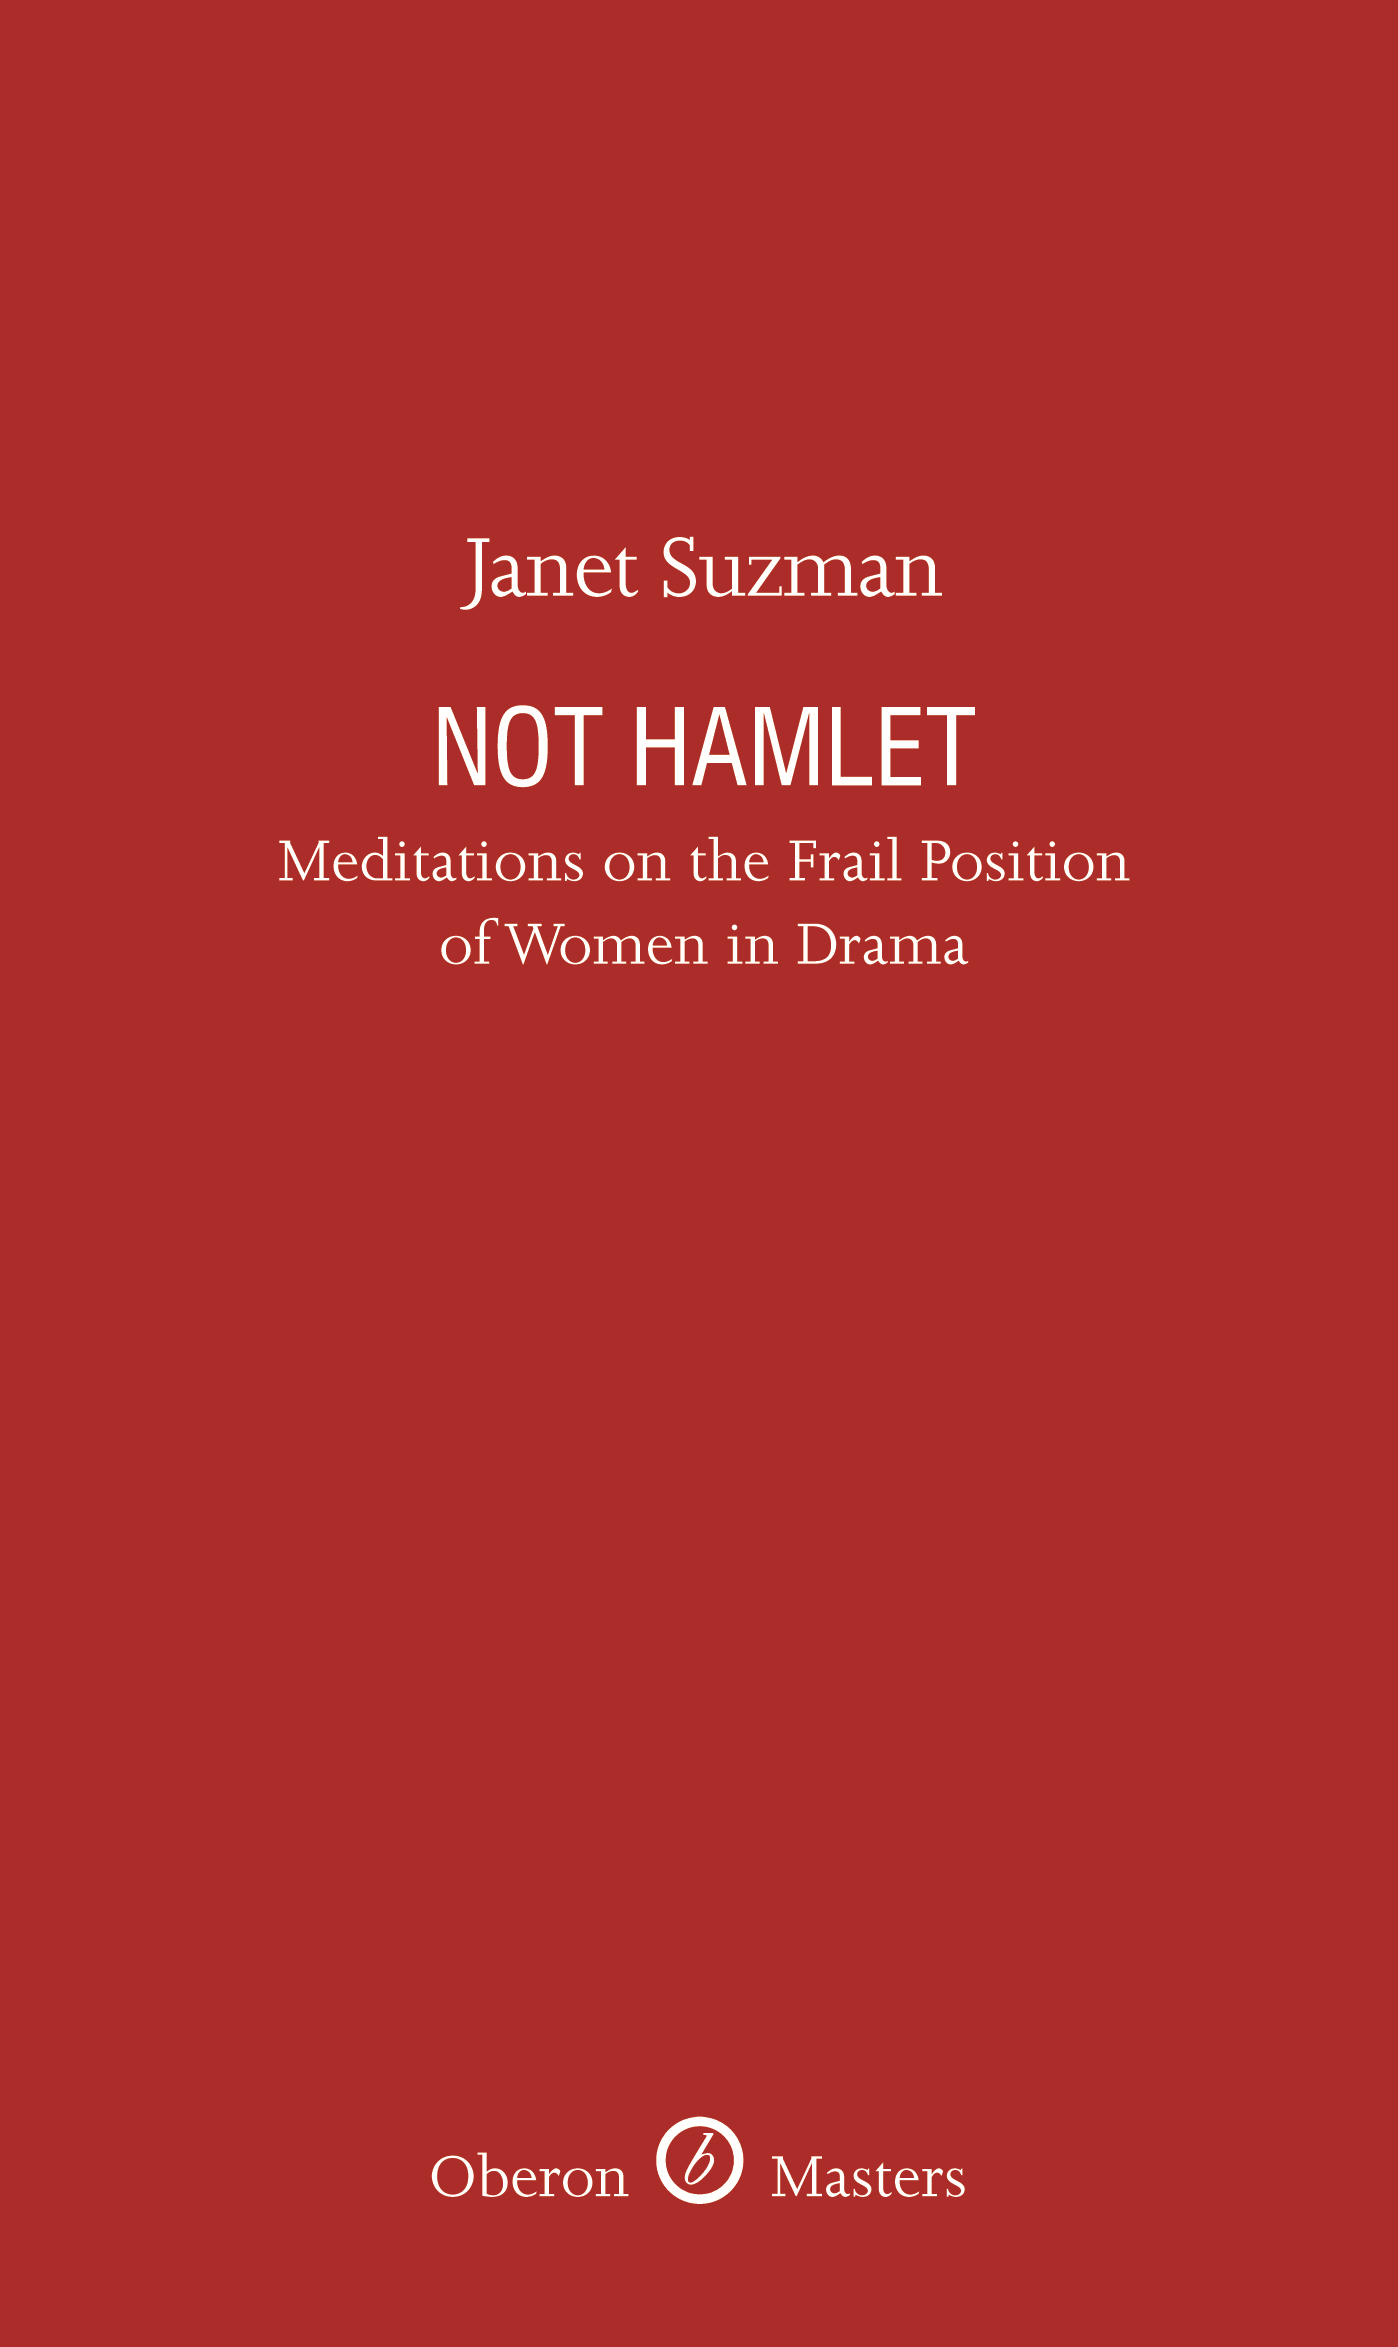 Not Hamlet: Meditations on the Frail Position of Women in Drama